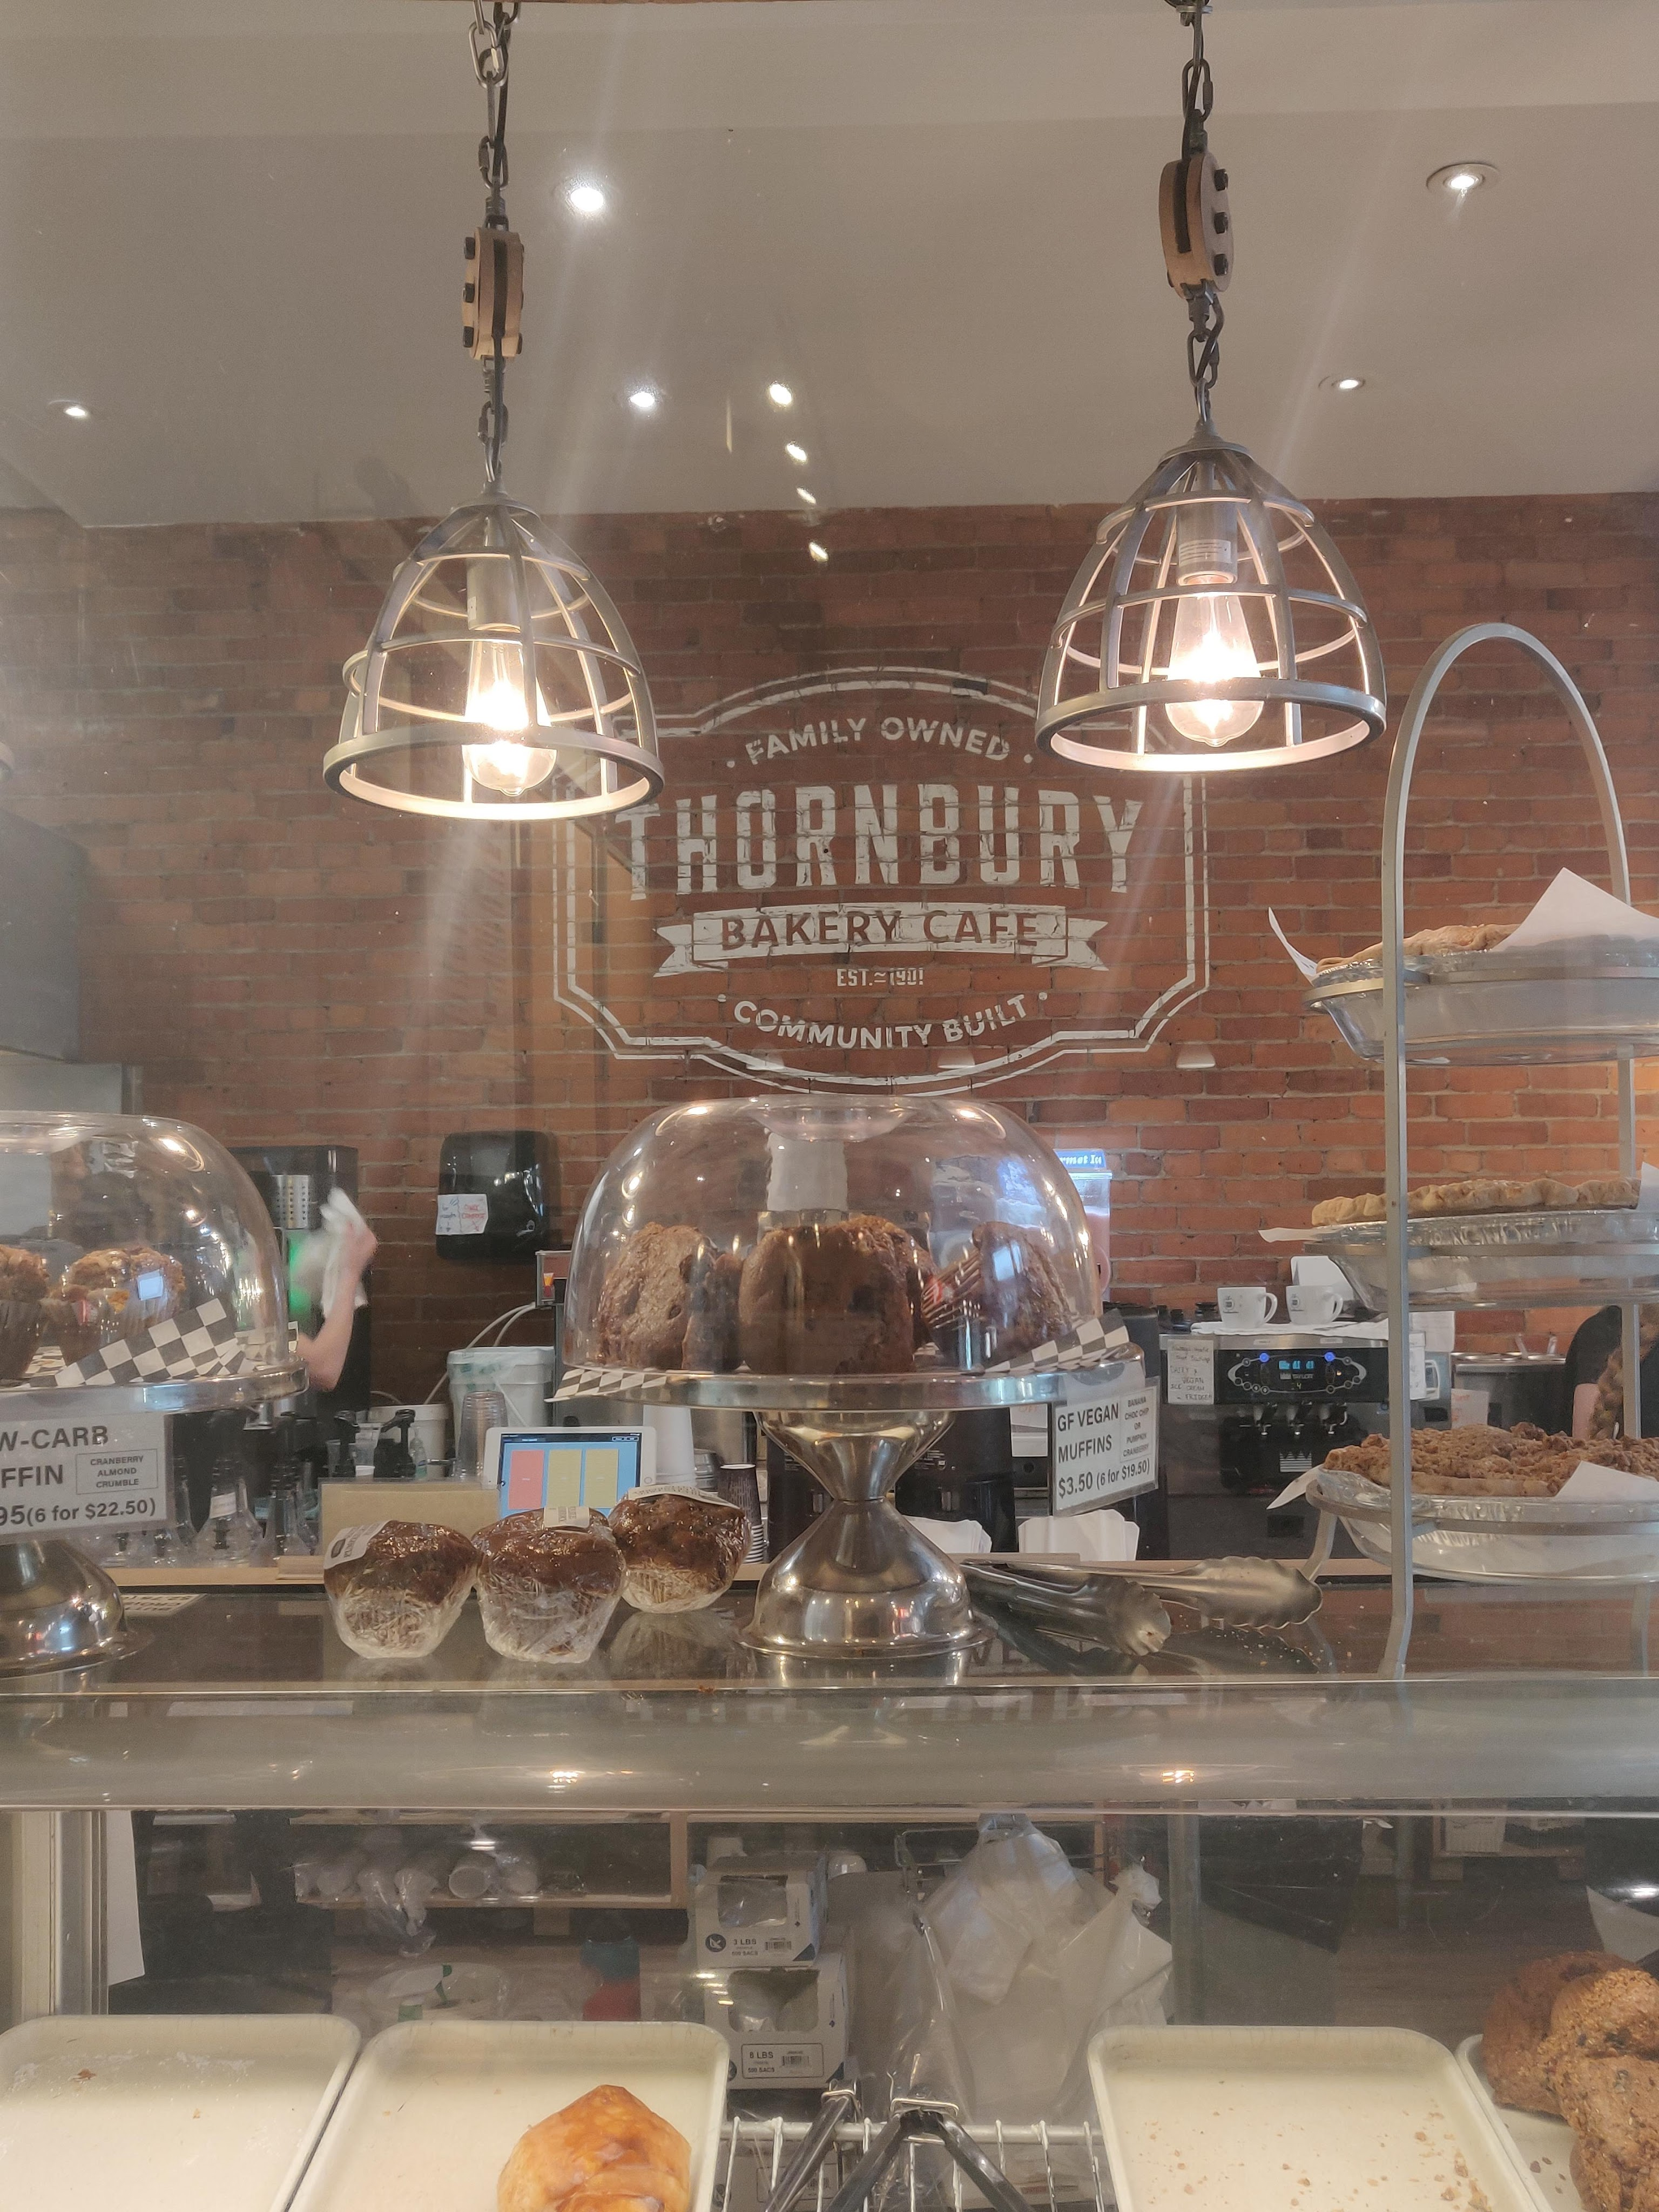 The lower third of the picture is of the pastry display case. There are assorted pastries on separated plates and tongs used to serve them. On top of the glass case there are two domed cake platters containing muffins and a three-tier pie rack. There are two wire framed pendant lights hanging above, and the Thornbury bakery cafe logo is painted on a brick wall behind the counter.